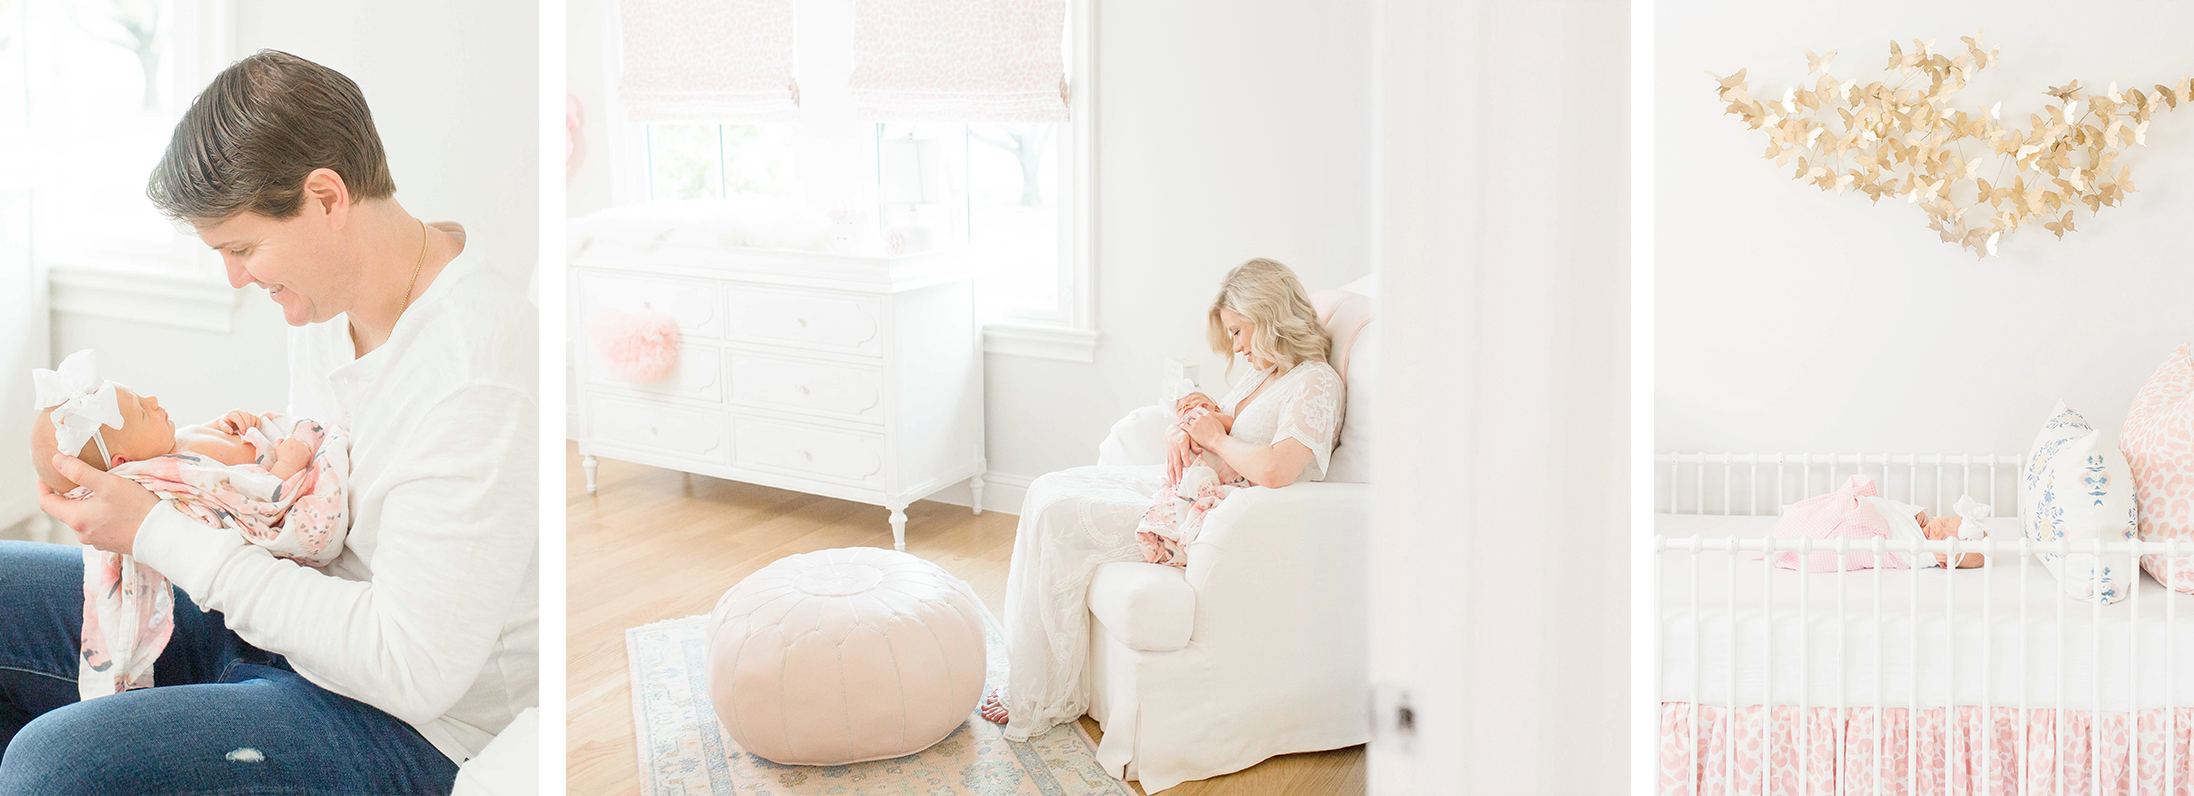 dallas in-home newborn photographer